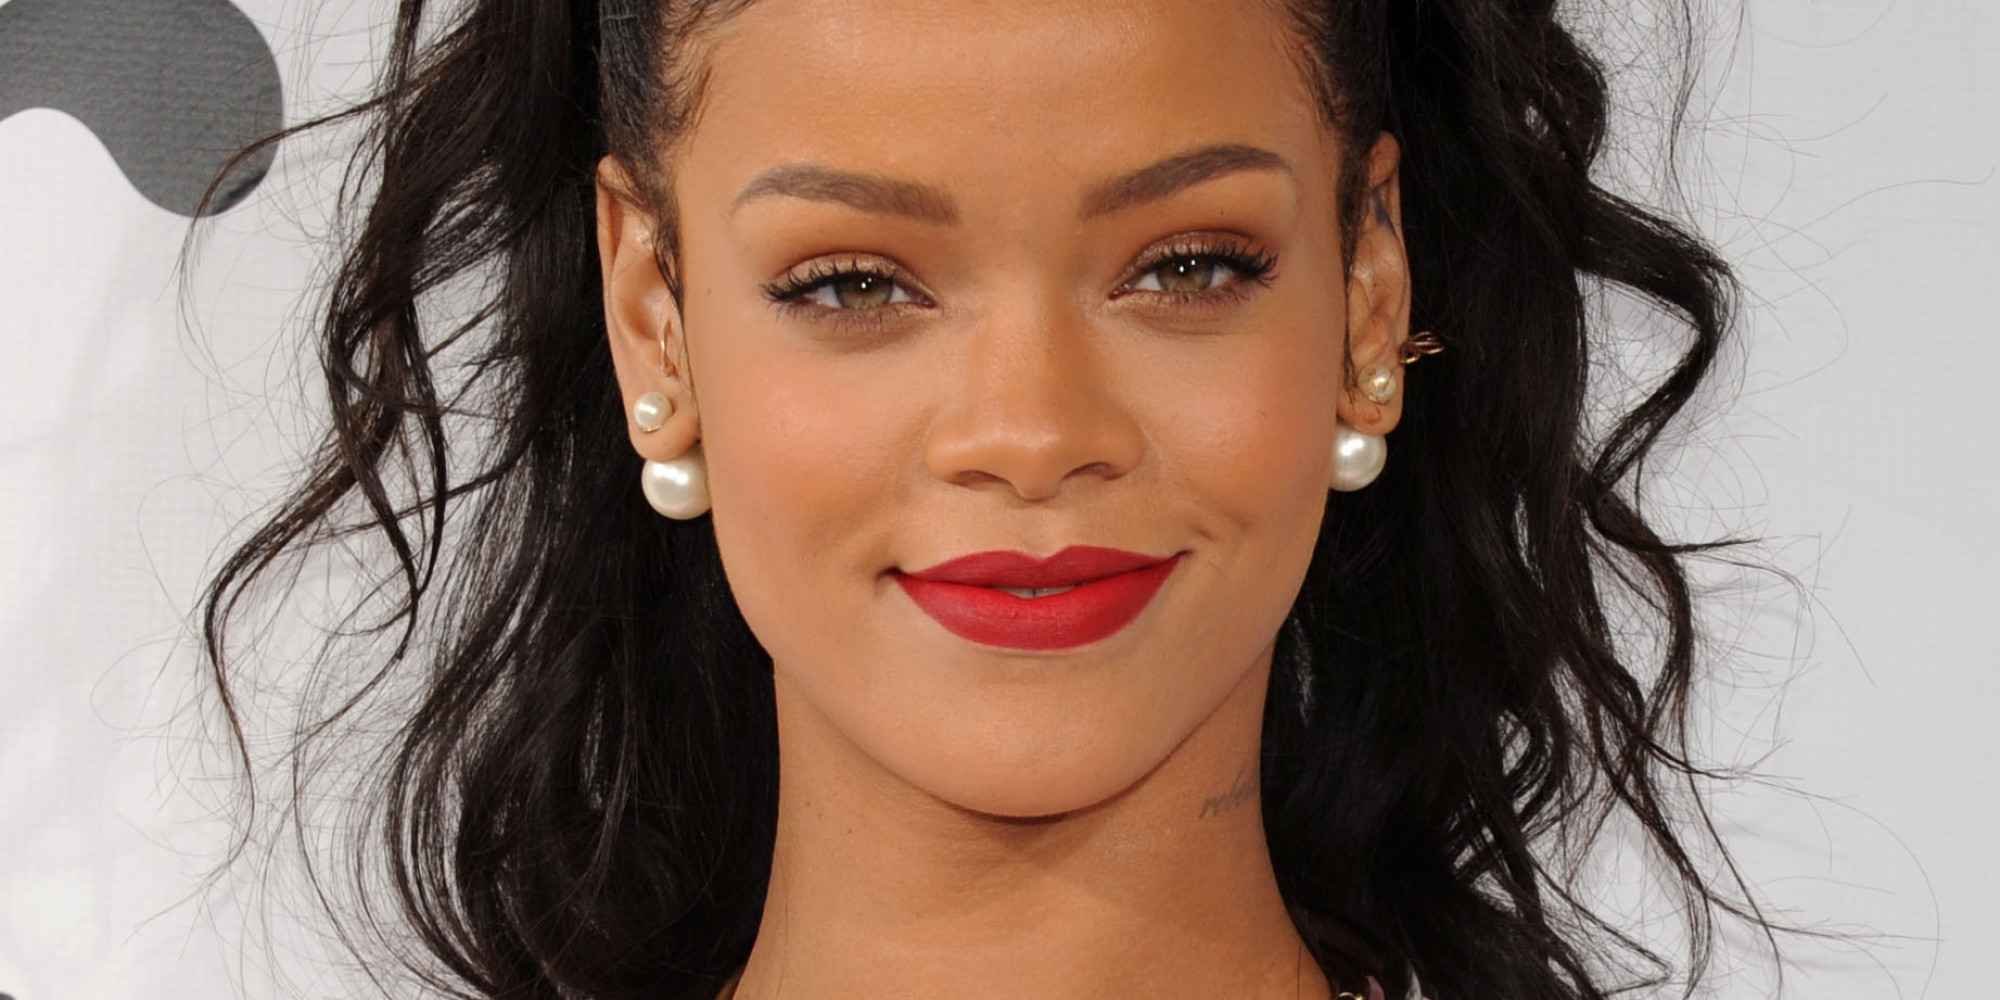 Rihanna Red Lipstick 434.66 Kb